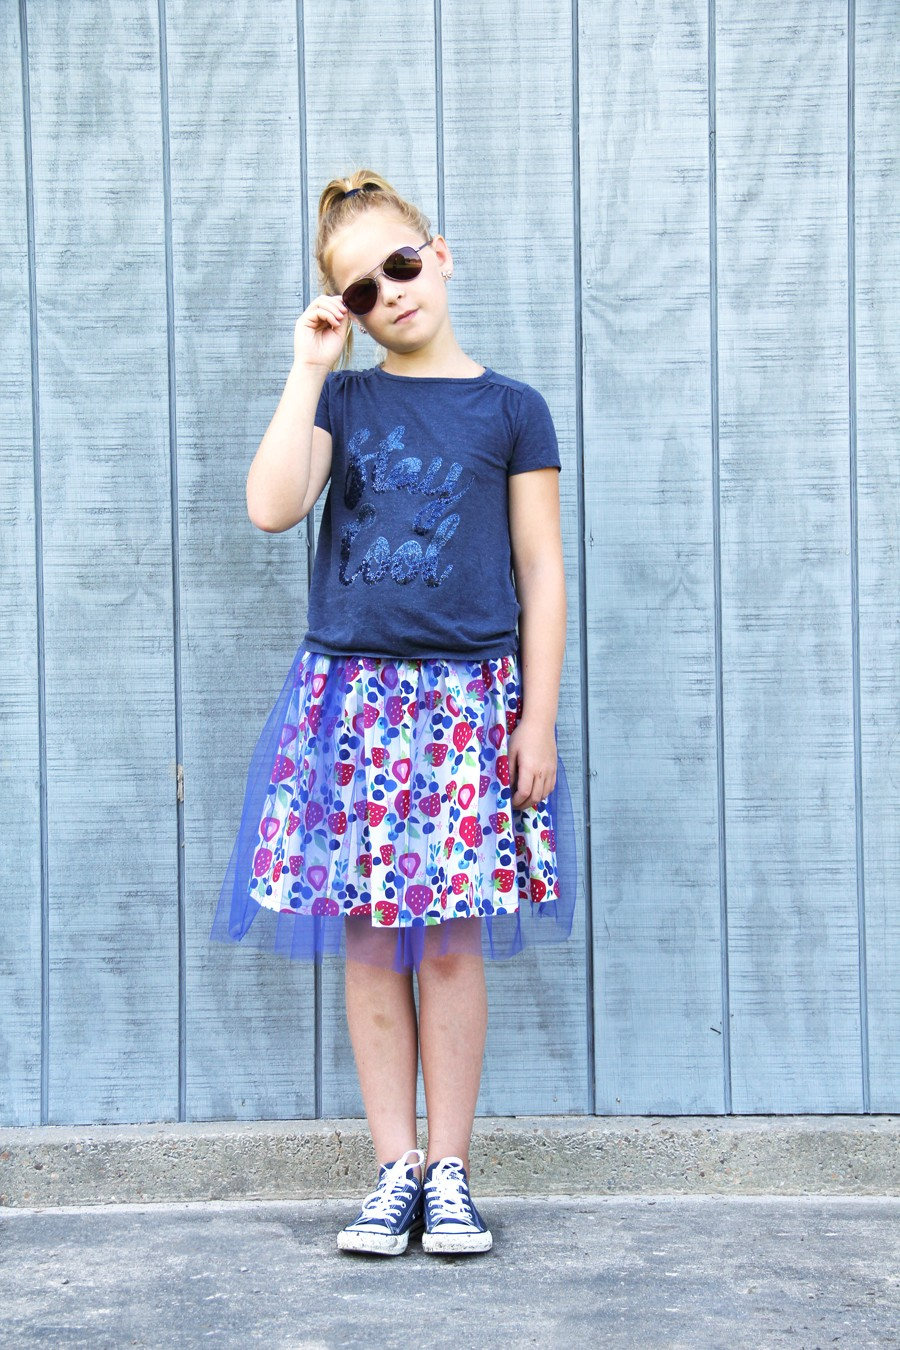 FREE SKIRT PATTERN: Tulle overlay skirt, sizes 2T thru 12